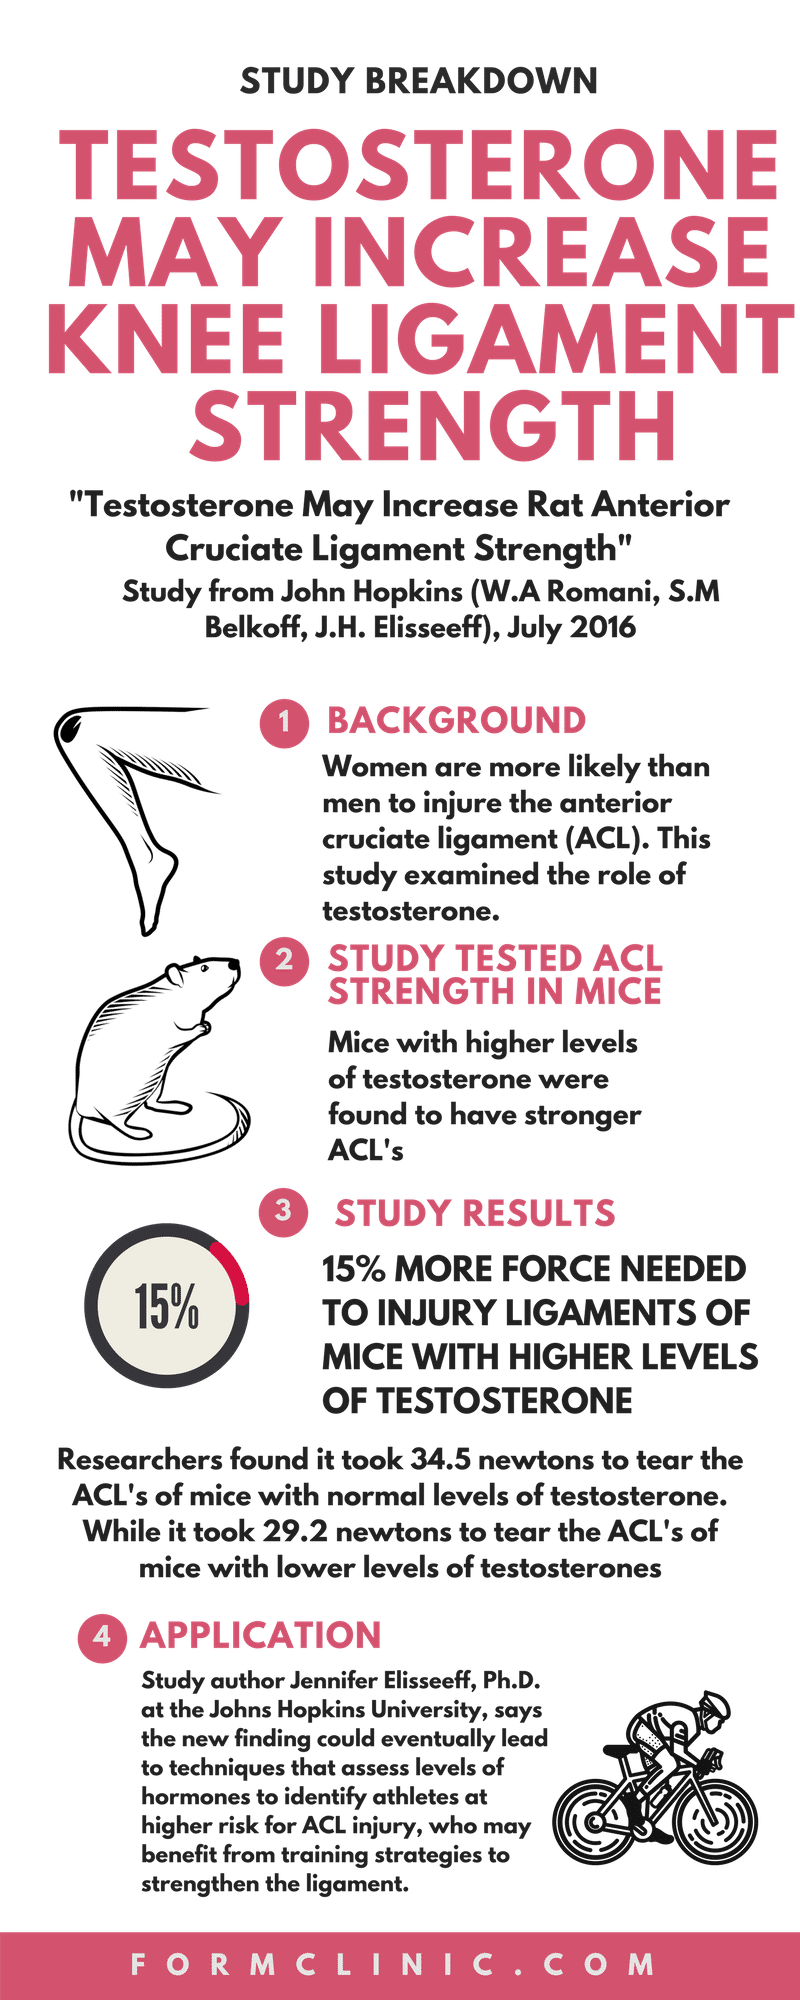 TESTOSTERONE-MAY-INCREASE-KNEE-LIGAMENT-STRENGTH-infographic-plaza